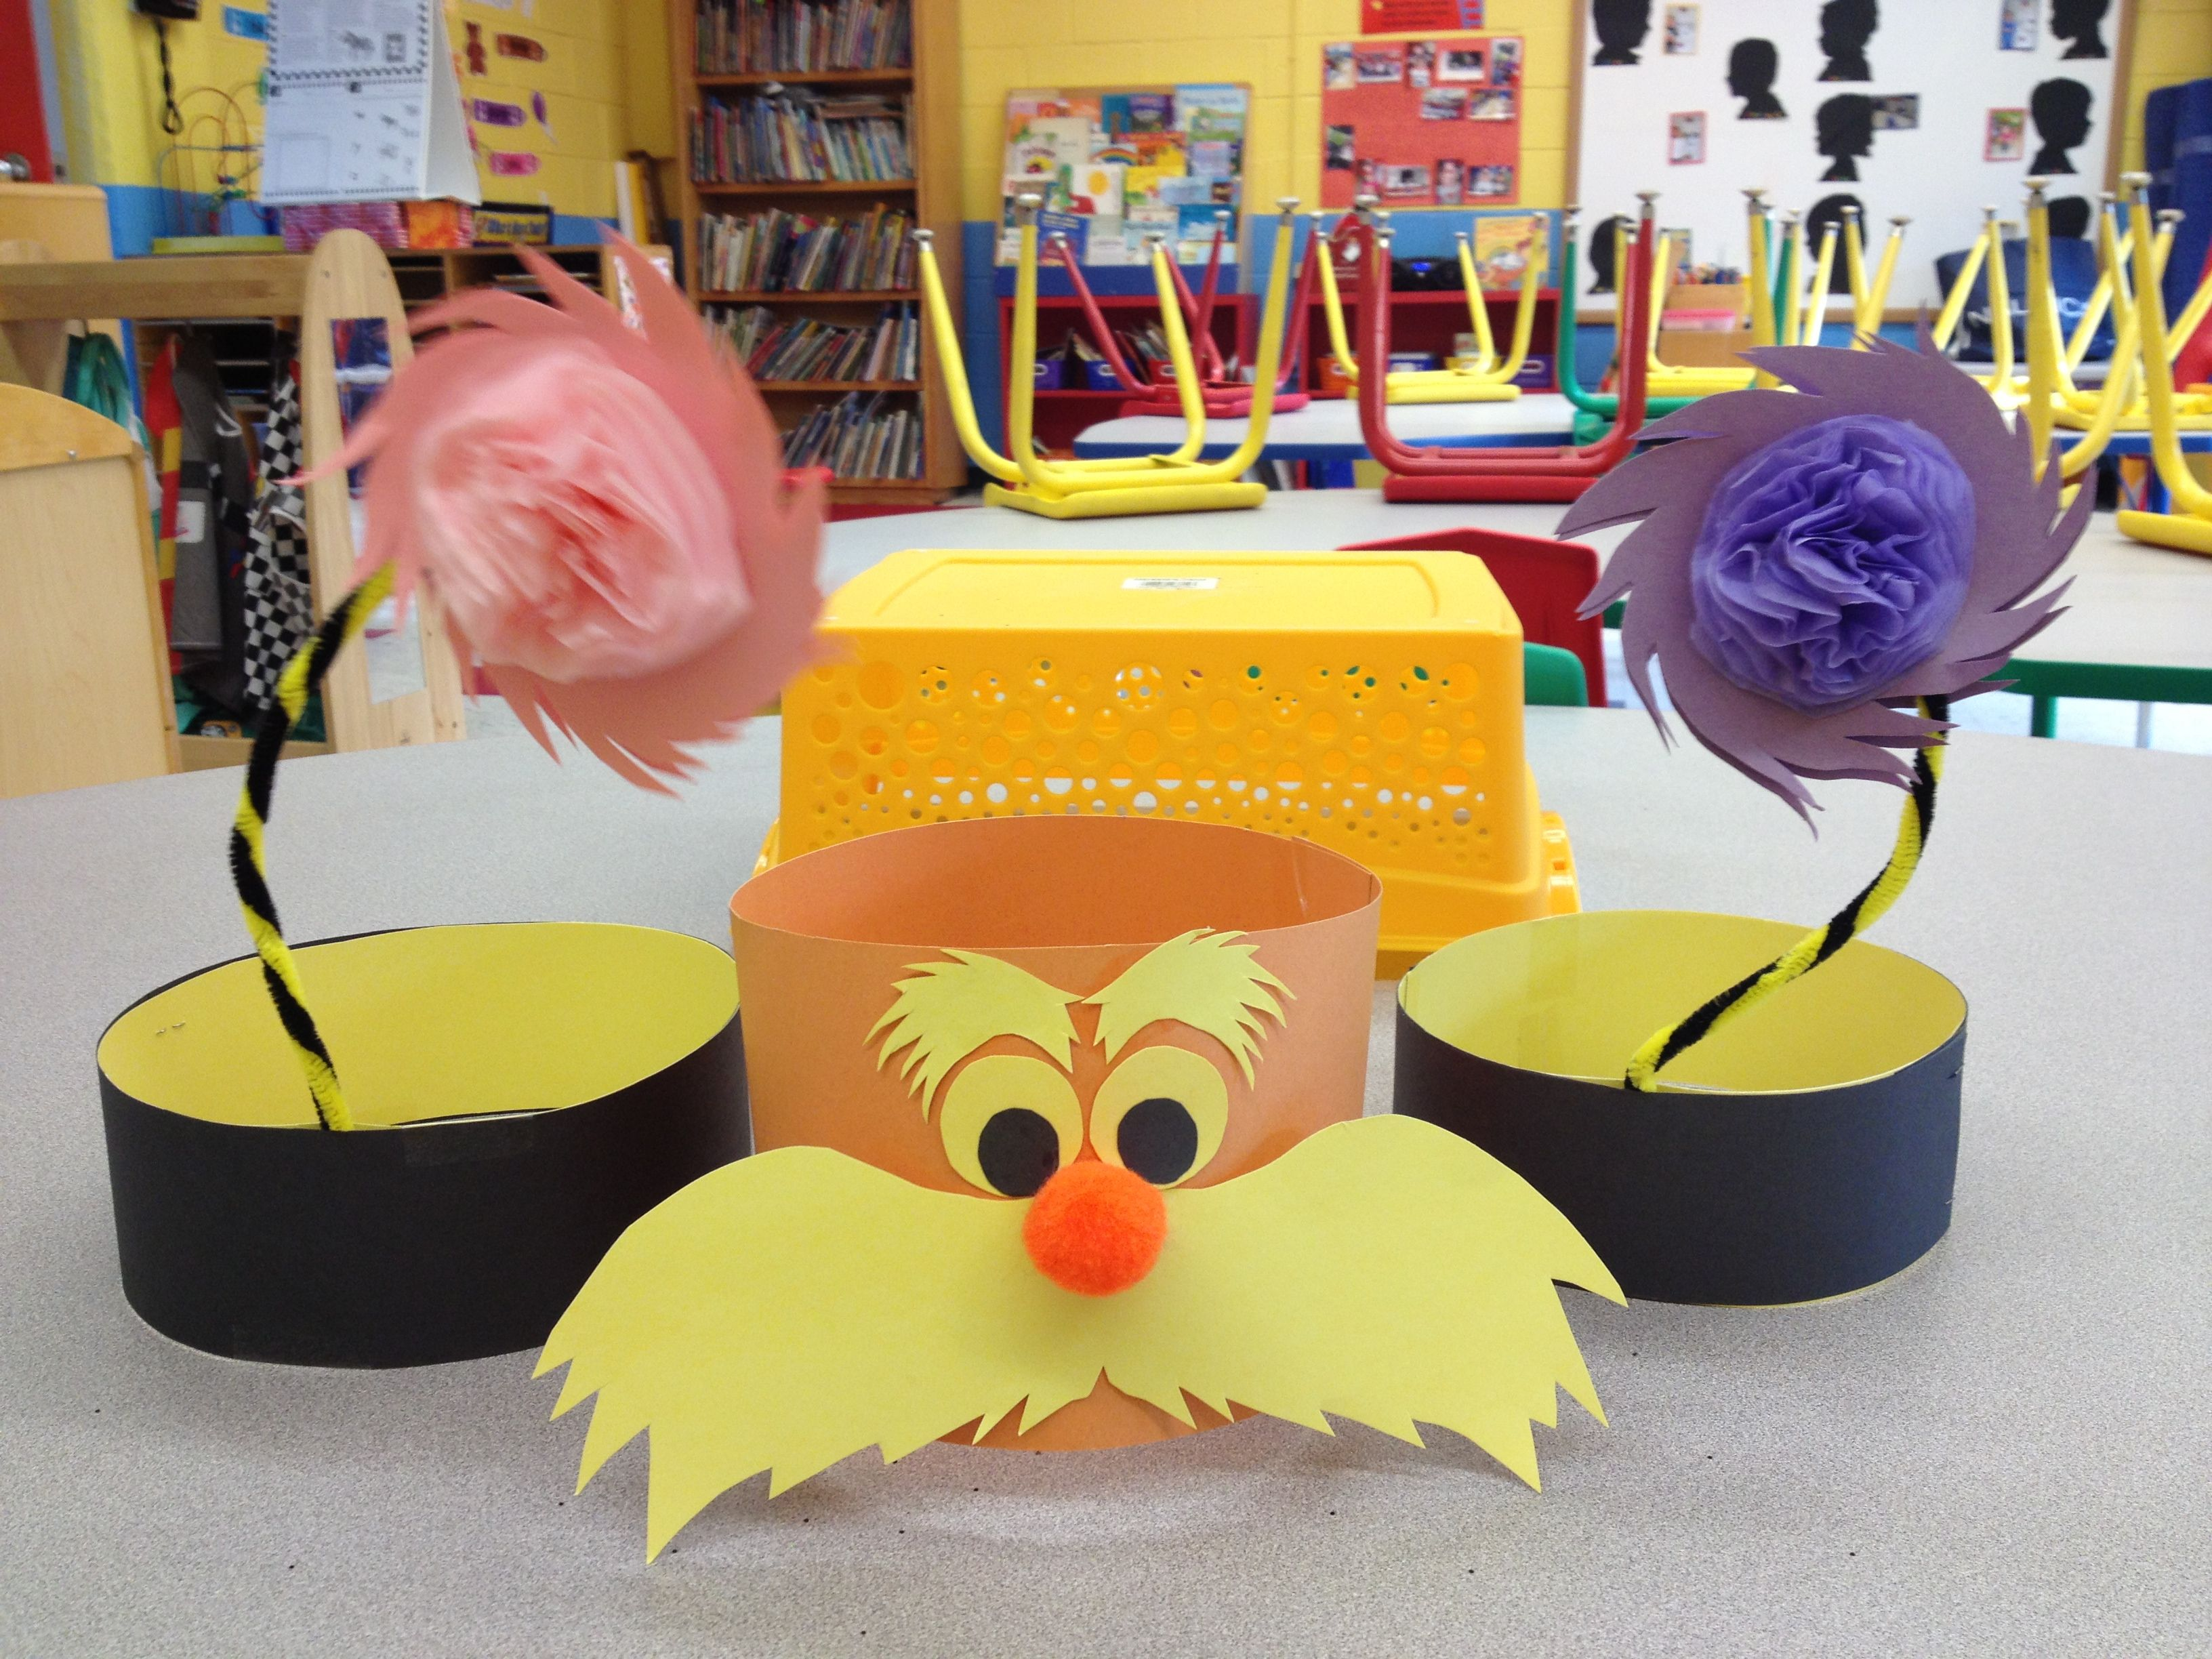 further The 25  best Preschool monthly themes ideas on Pinterest   Monthly together with dr  seuss flyers   Dr Seuss Spirit Week Flyer   dr  seuss in addition Hooray for DiffenDoofer Day    Door Decorating   Pinterest moreover 435 best Dr  Seuss images on Pinterest   Dr seuss activities likewise  additionally dr seuss numbers   Dr Seuss Math Worksheets   Its so Seussical moreover 232 best Dr  Seuss images on Pinterest   Dr seuss activities  Book together with 110 best Dr  Seuss images on Pinterest   Dr suess  Classroom ideas besides  also 31 Ideas for Read Across America   Teach Junkie. on best dr seuss homeschooling images on pinterest activities book ideas reading week clroom day hat trees door worksheets march is month math printable 2nd grade